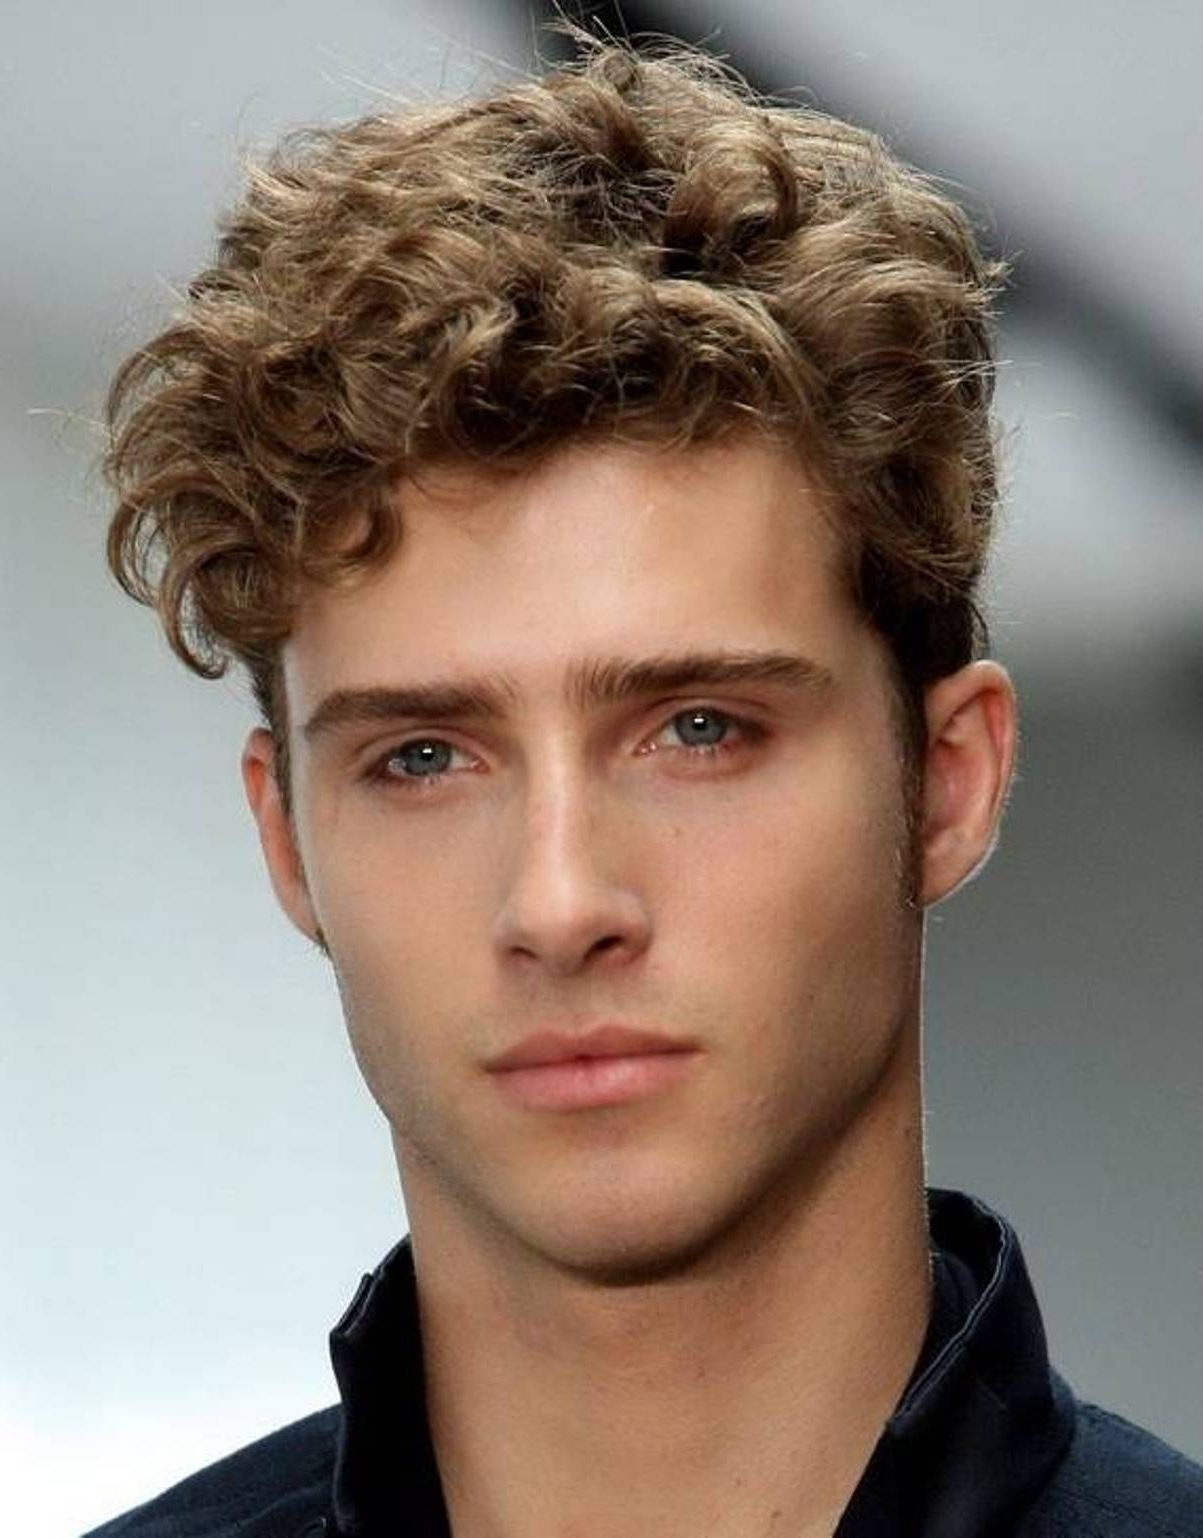 Curly Hairstyles Boy Cool Hairstyles For High School Boys Urban Hair